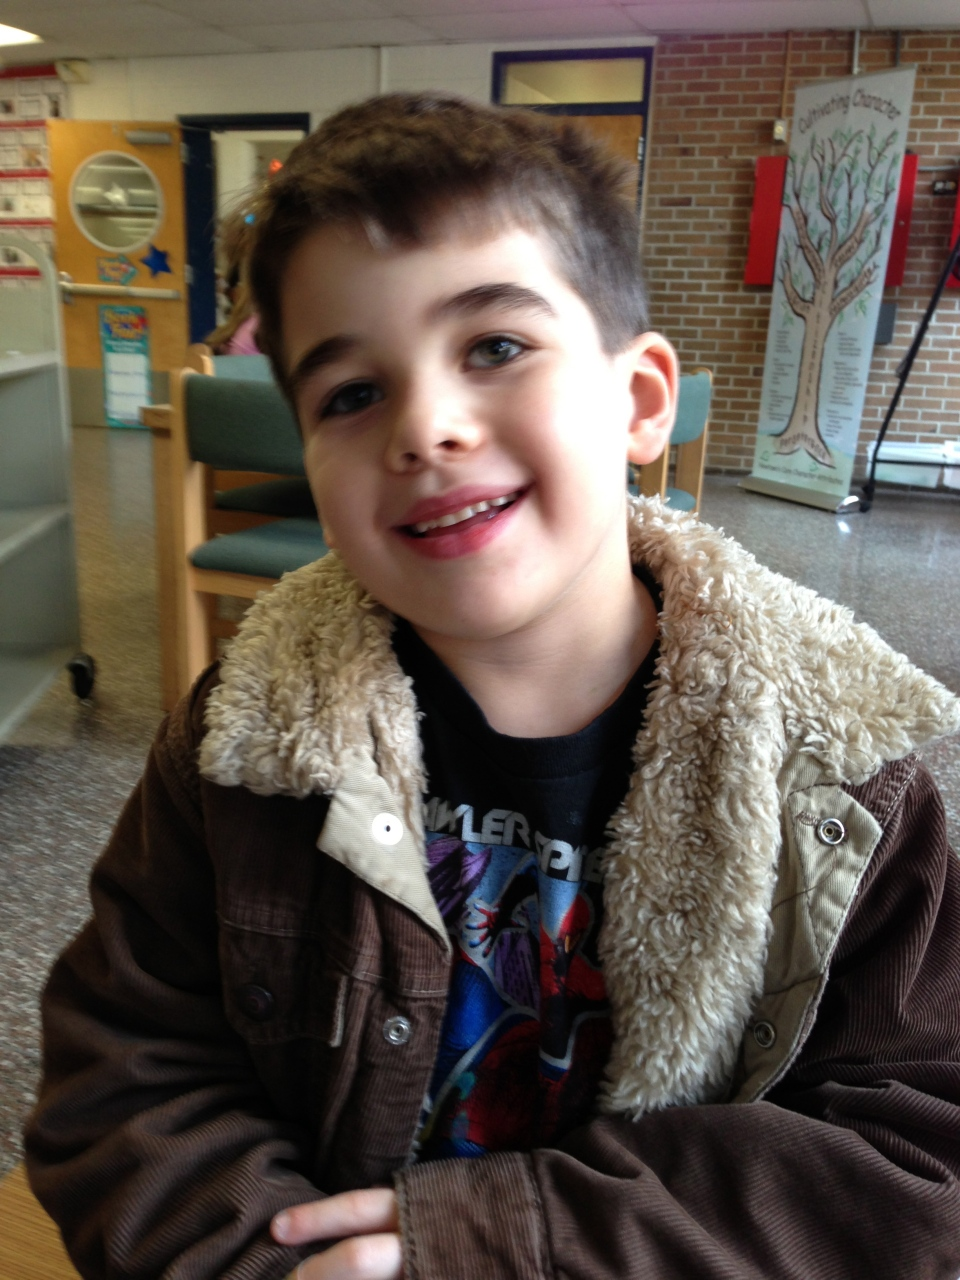 Six-year-old Noah Pozner, shown here on Nov. 13, 2012, was killed in Newtown, Conn. on Dec. 14, 2012. (AP / Family Photo)